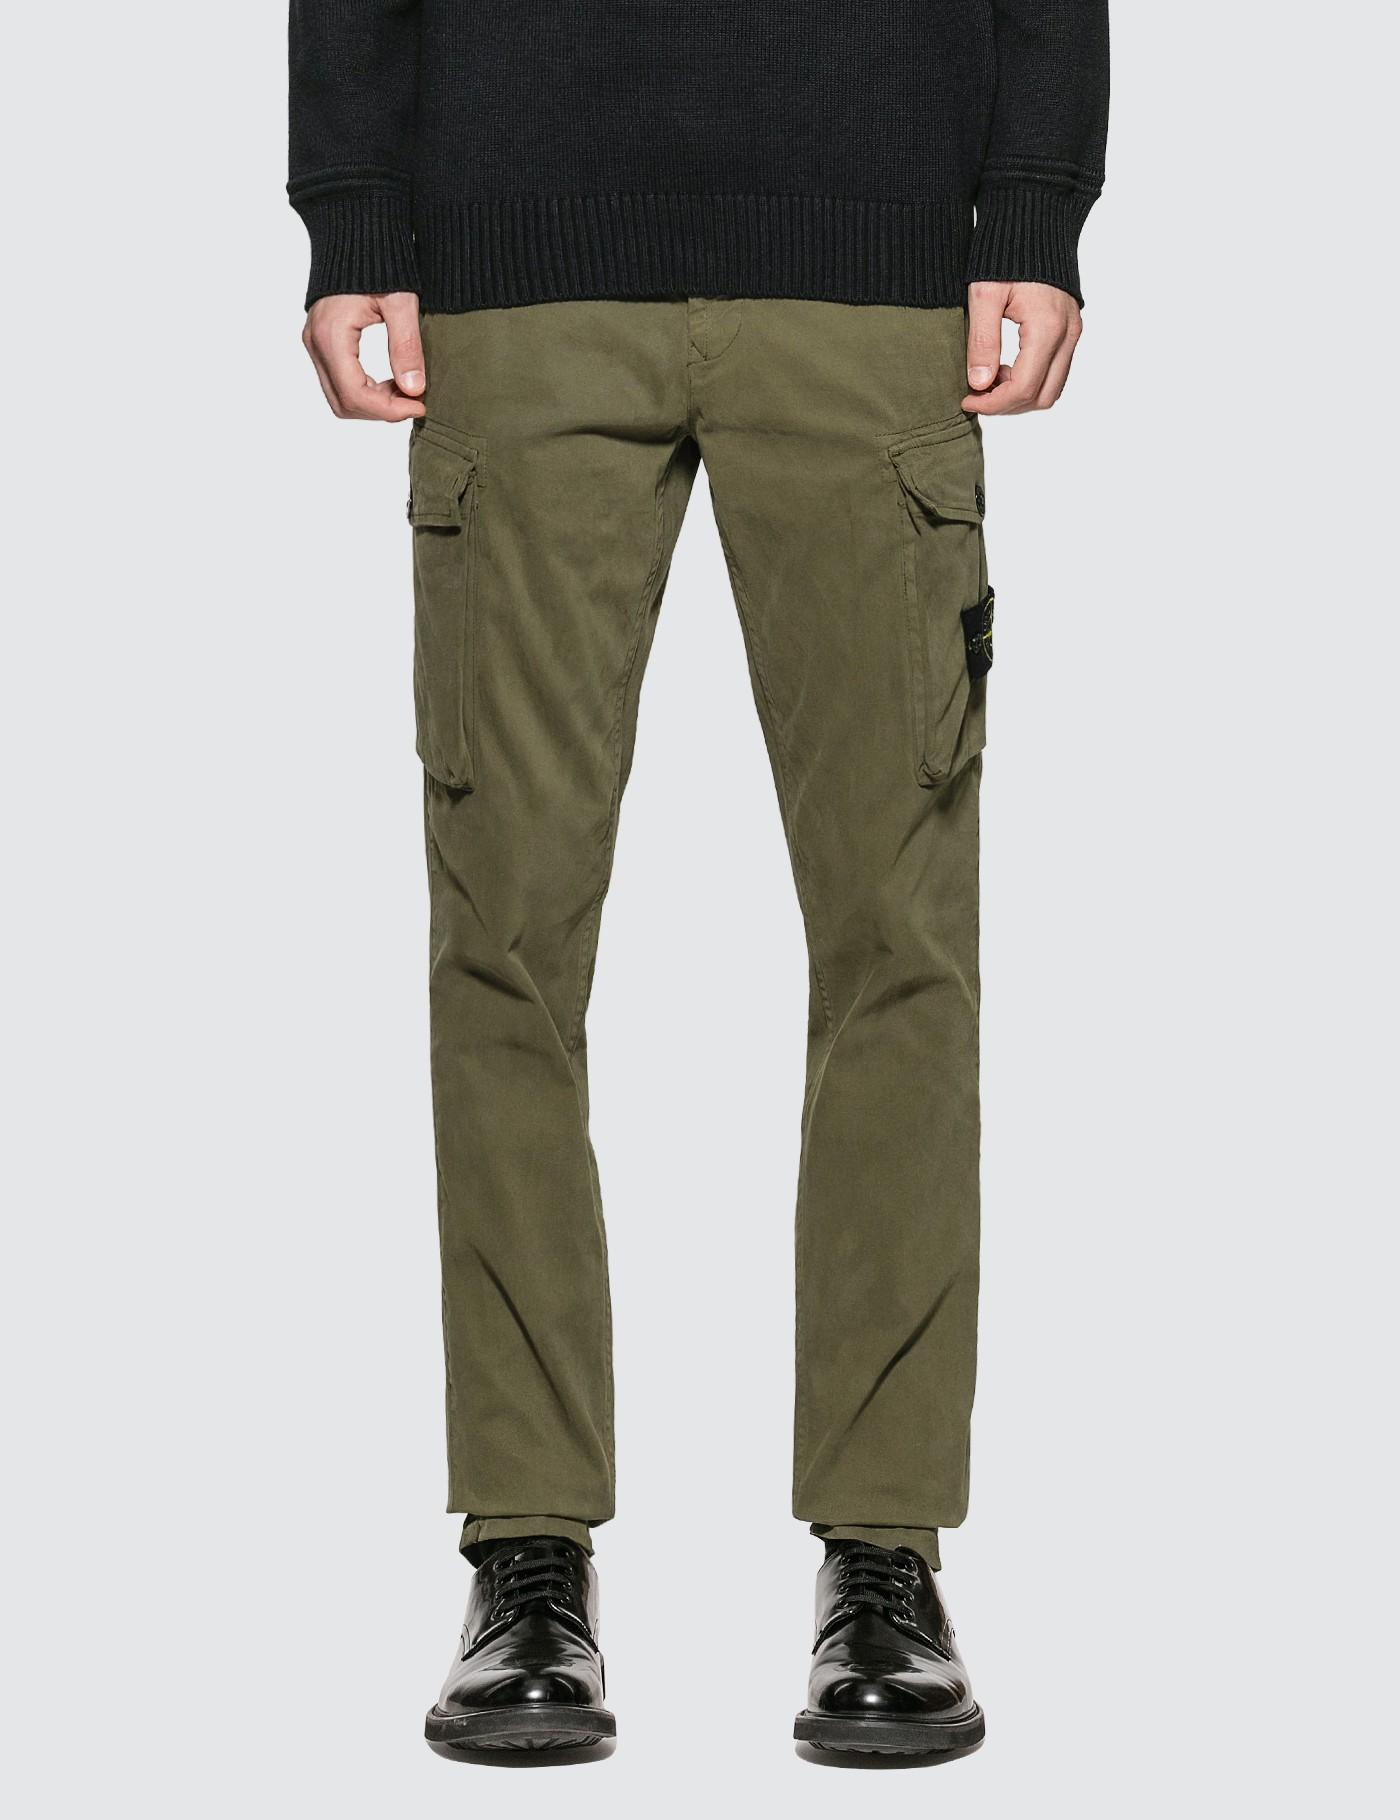 Stone Island Cotton Slim Fit Cargo Pants in Green for Men ...